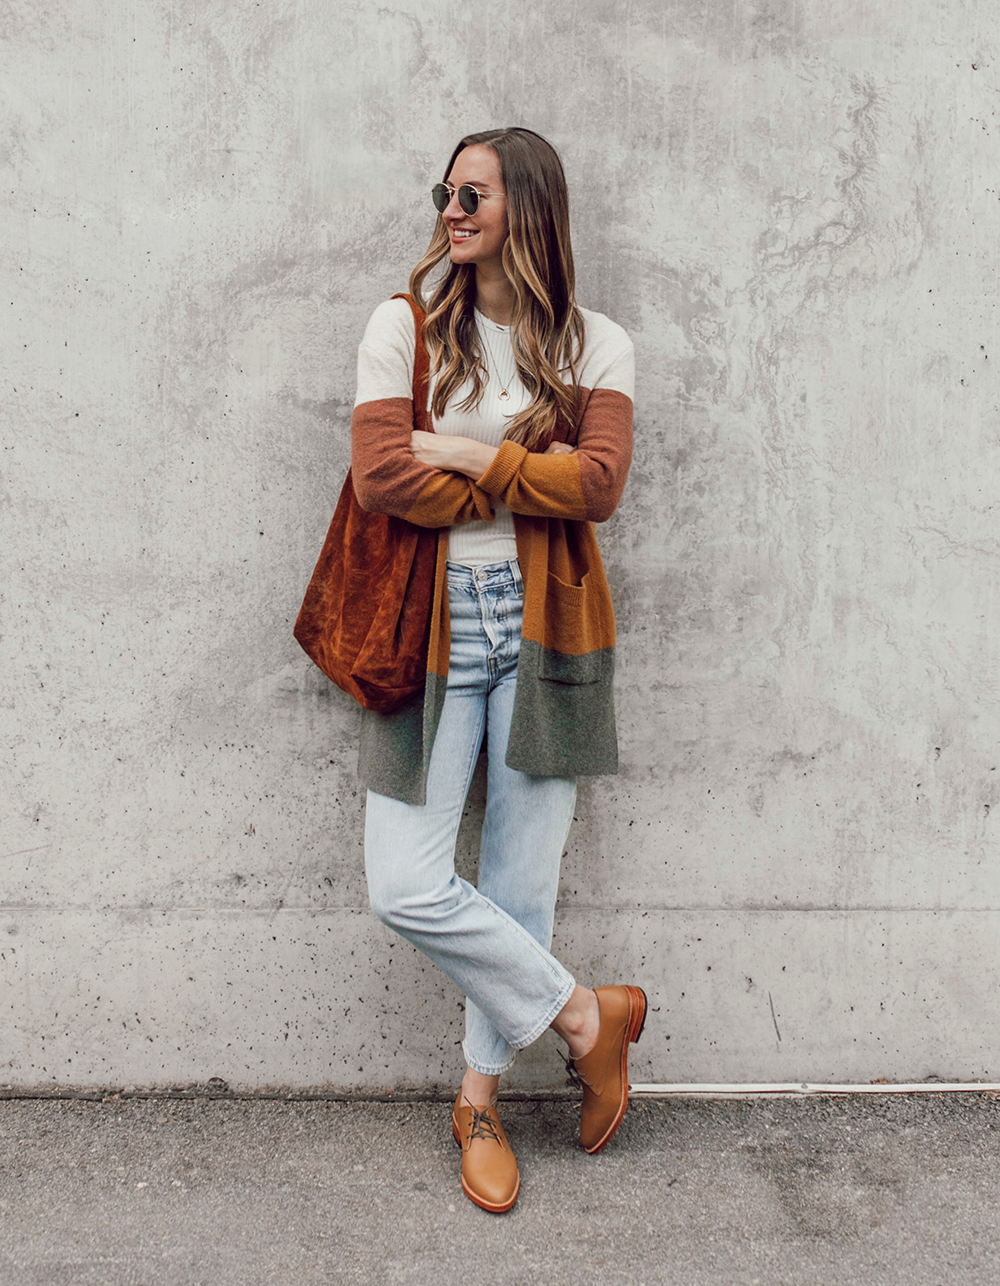 livvyland-blog-olivia-watson-austin-texas-fashion-lifestyle-blogger-nisolo-james-oxford-fall-outfit-idea-madewell-kent-cardigan-4